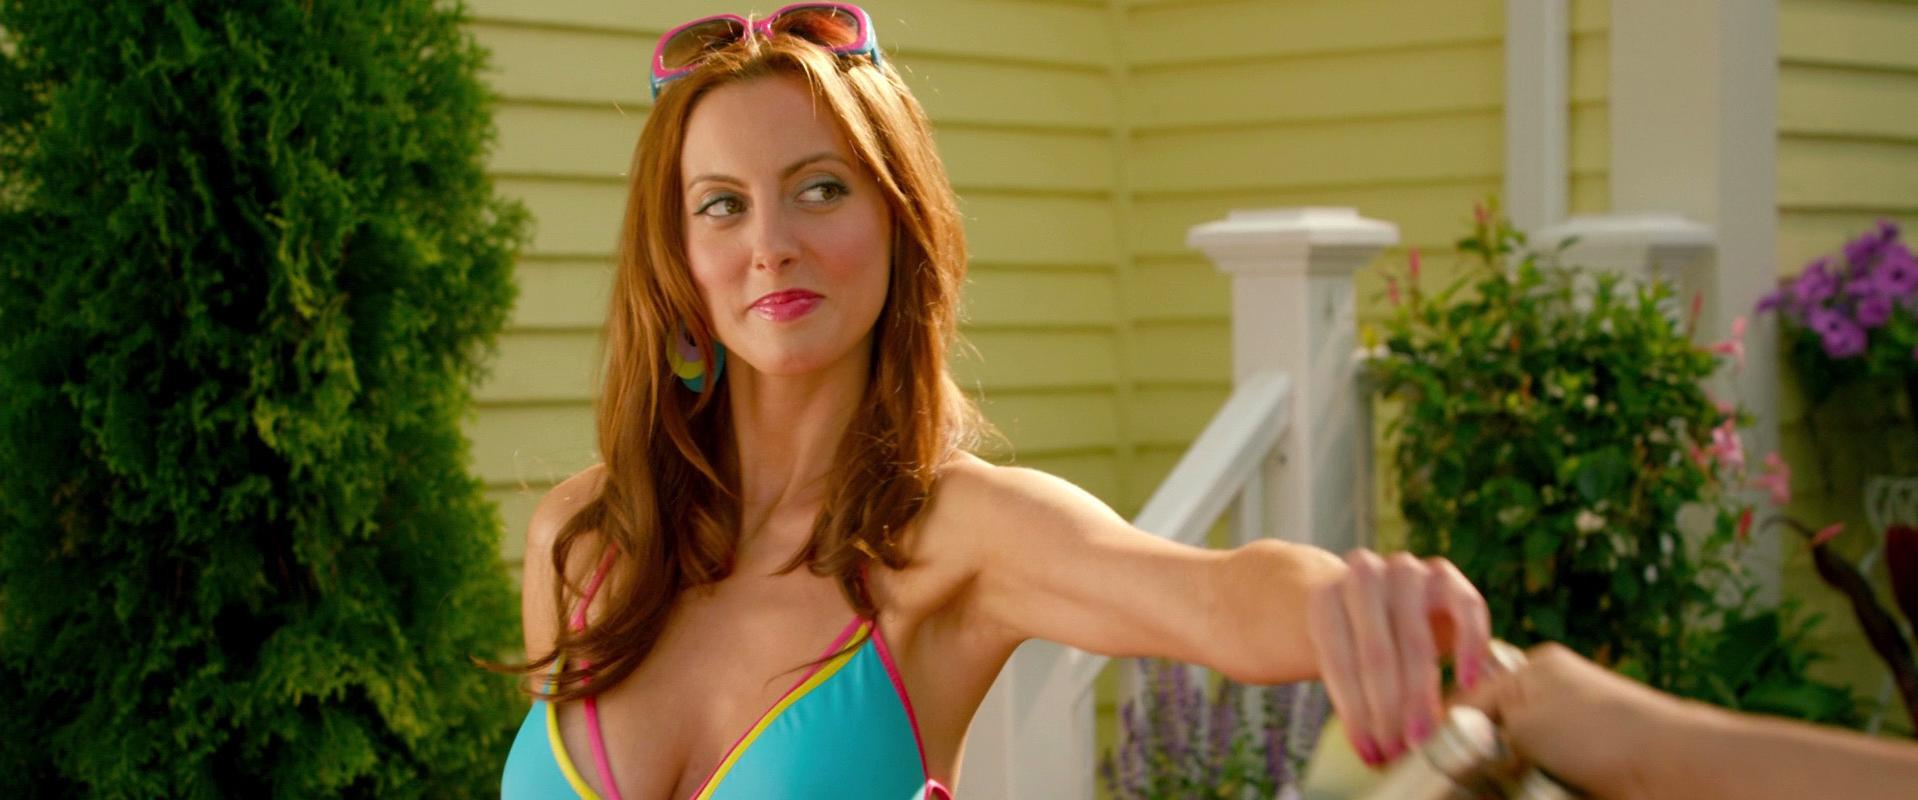 Eva Amurri sexy - That's My Boy (2012)